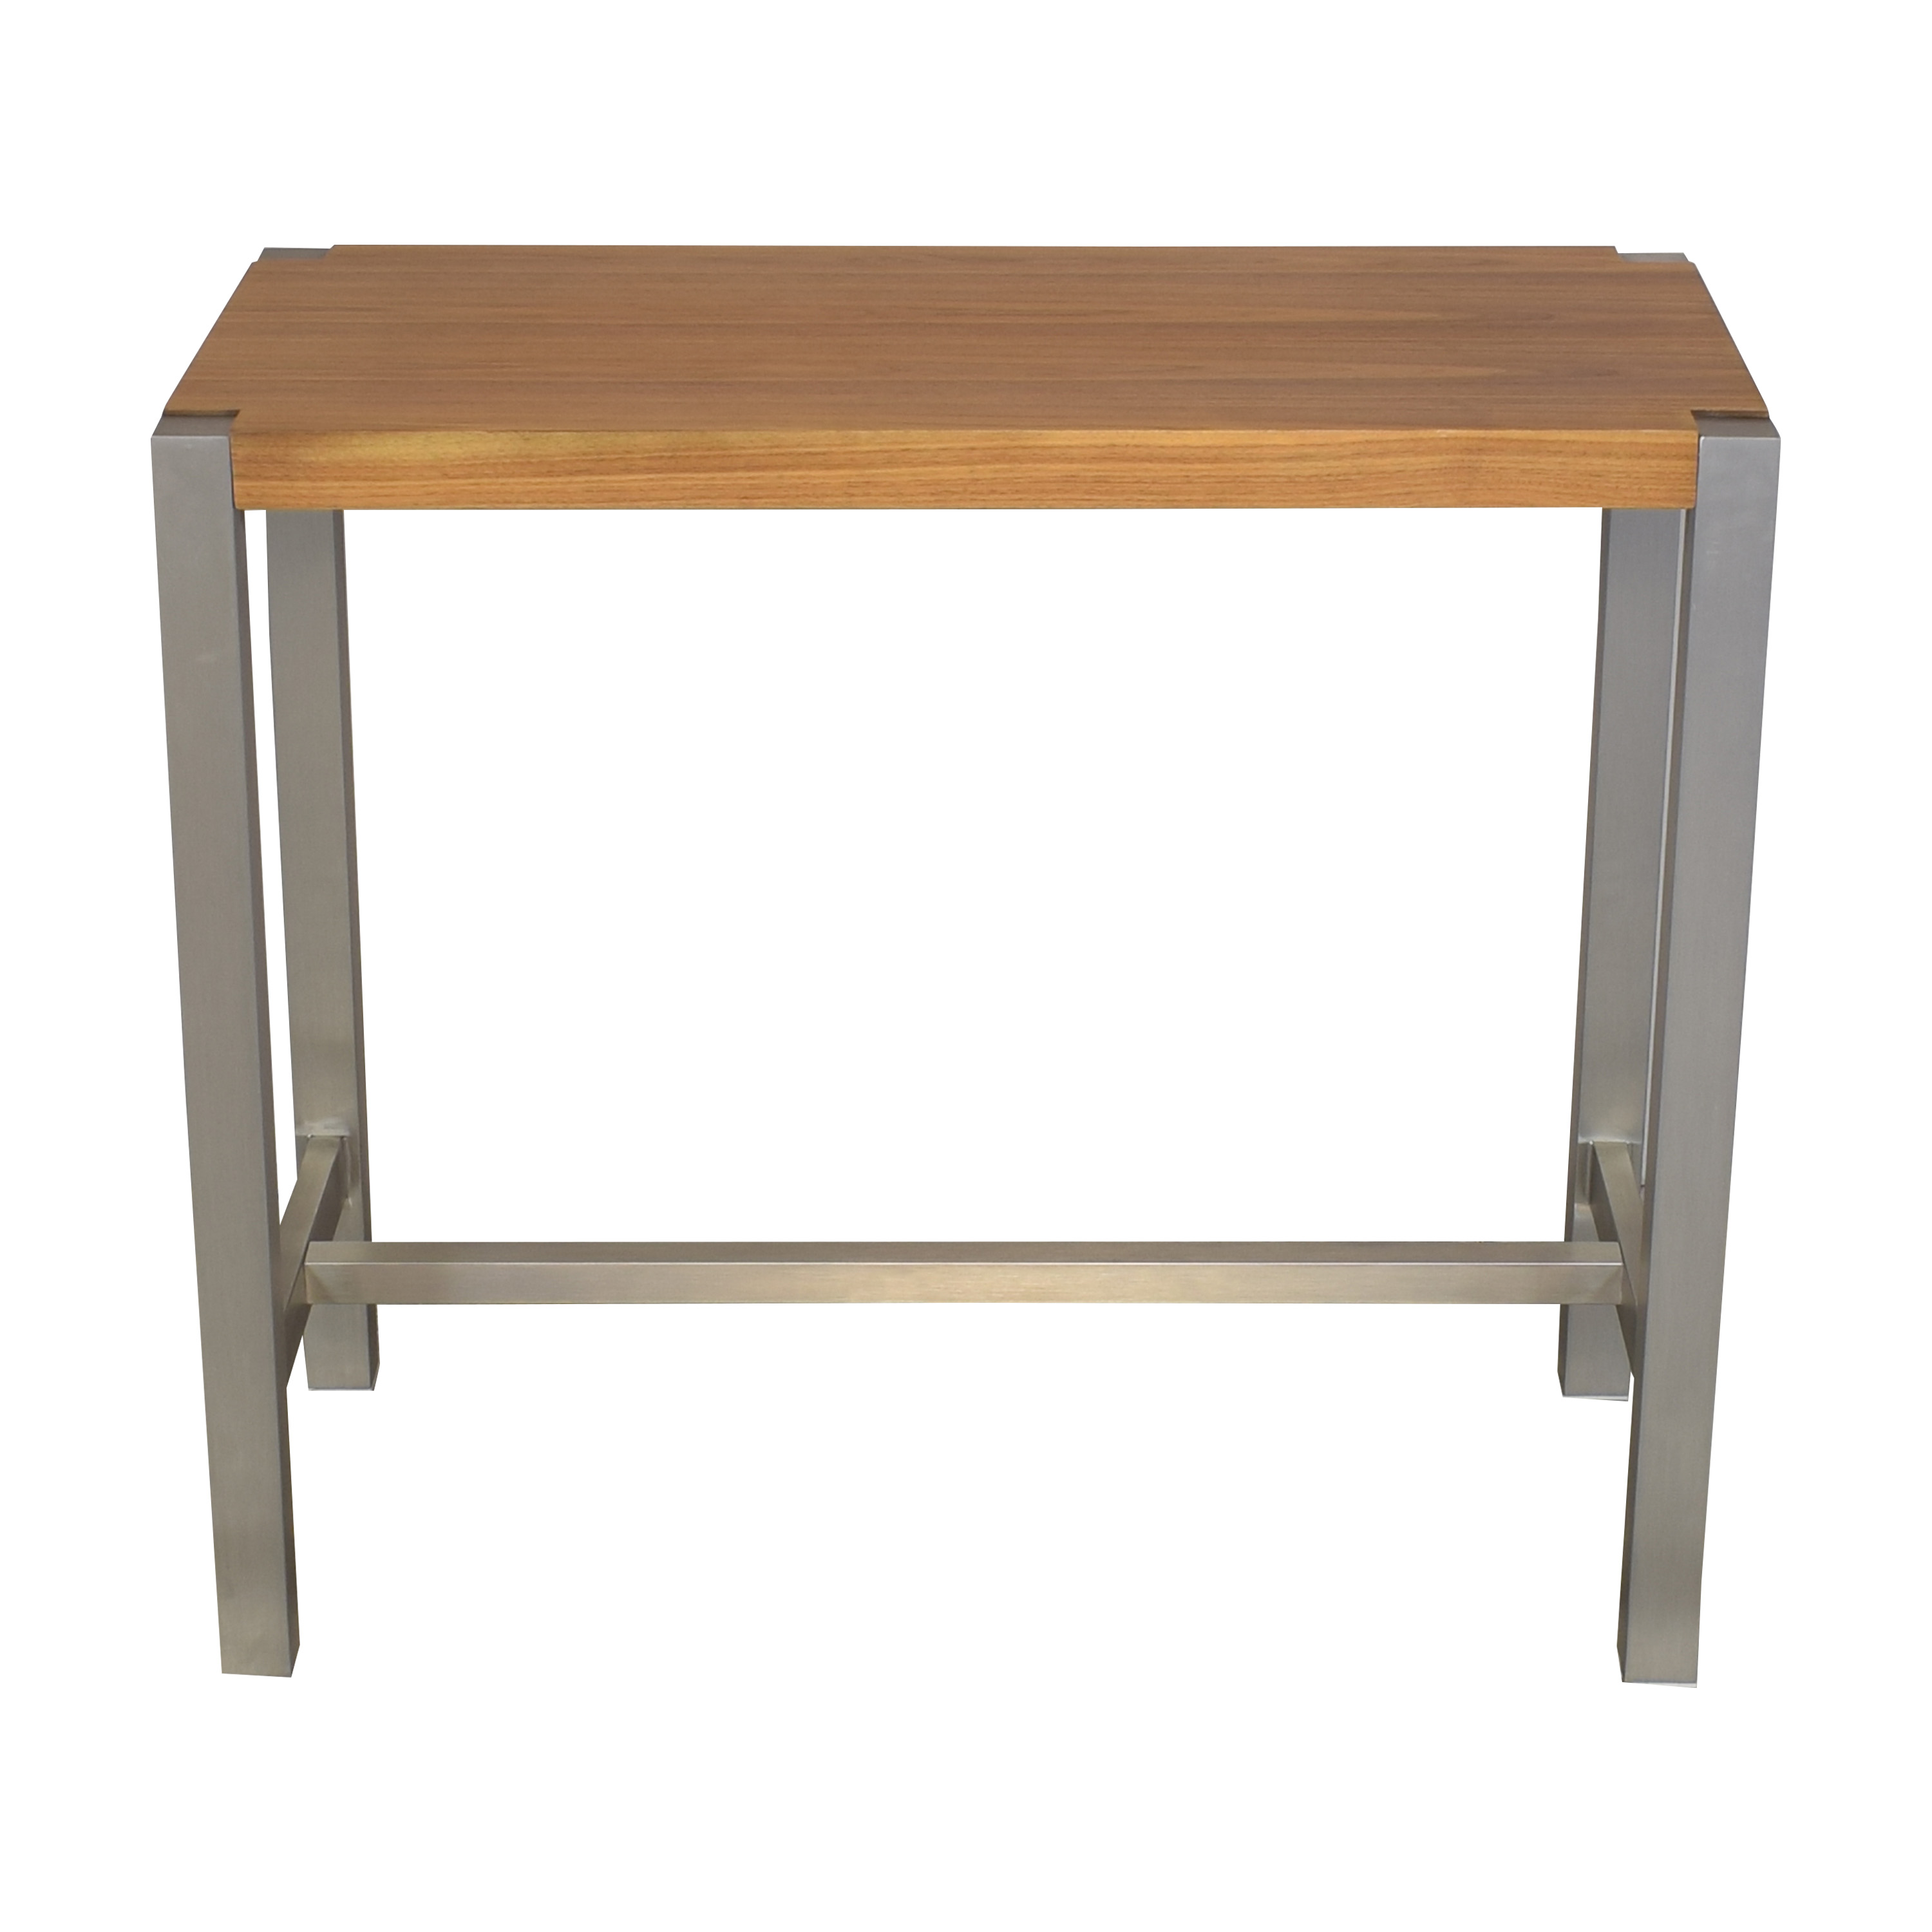 Moe's Home Collection Moe's Home Collection Riva Bar Table used